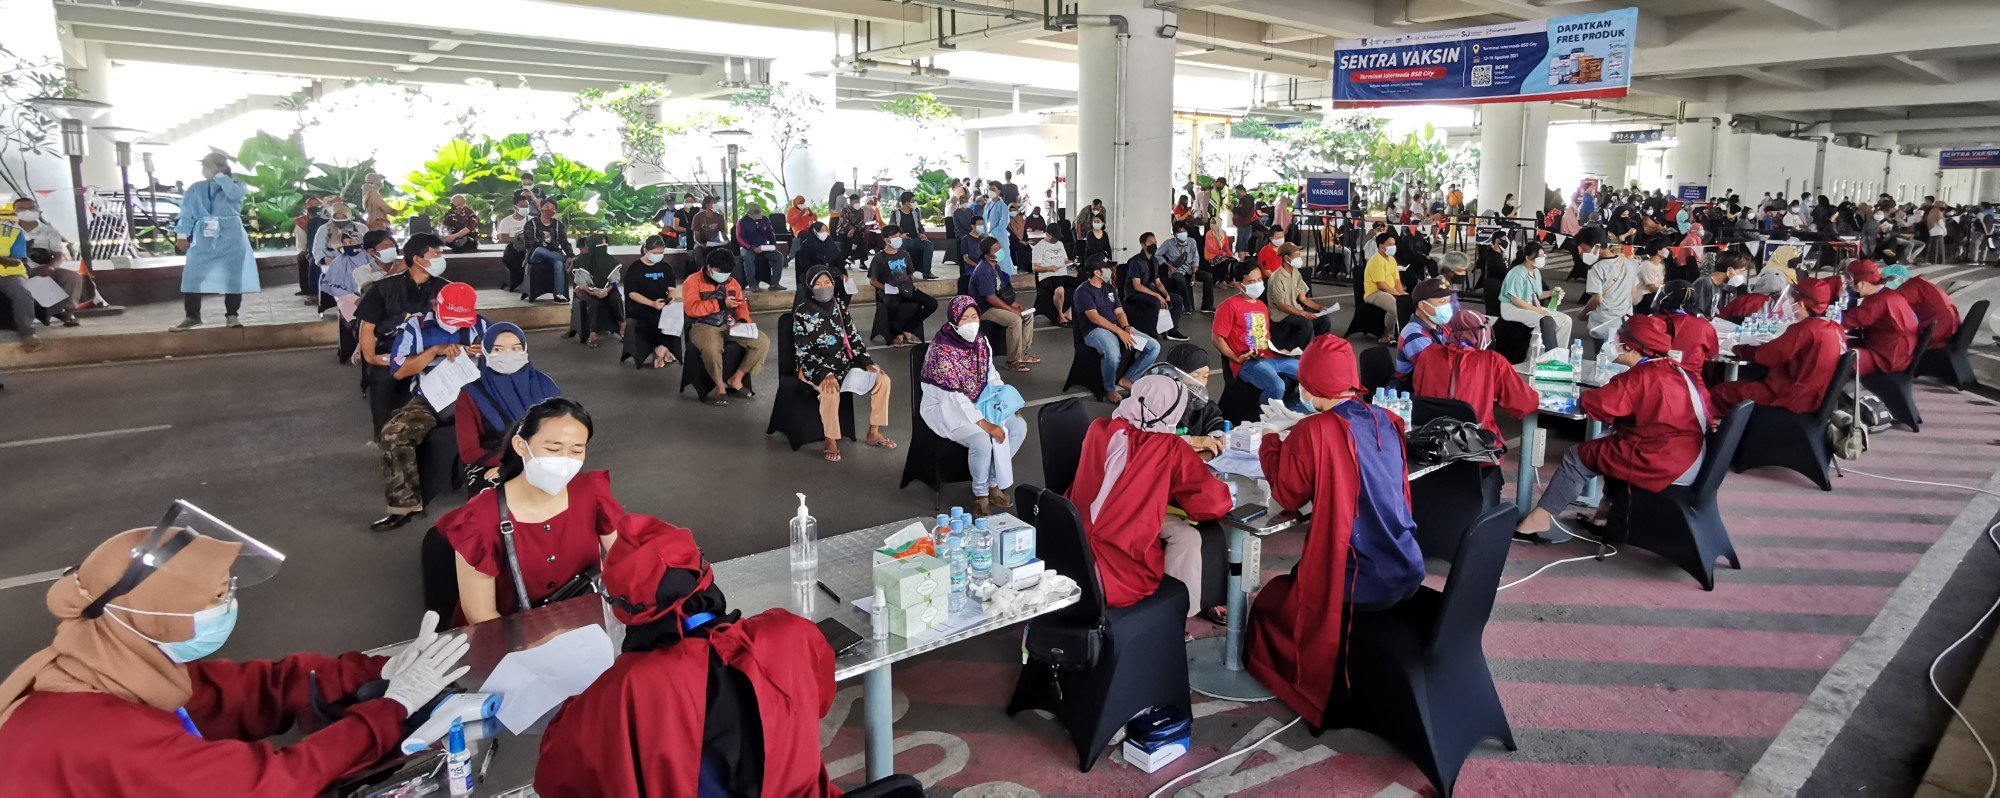 PT SMM Intermoda, a partnership company of Mitbana and Sinar Mas Land, has established a vaccination centre to cater to about 5,000 people at Terminal Intermoda BSD City.